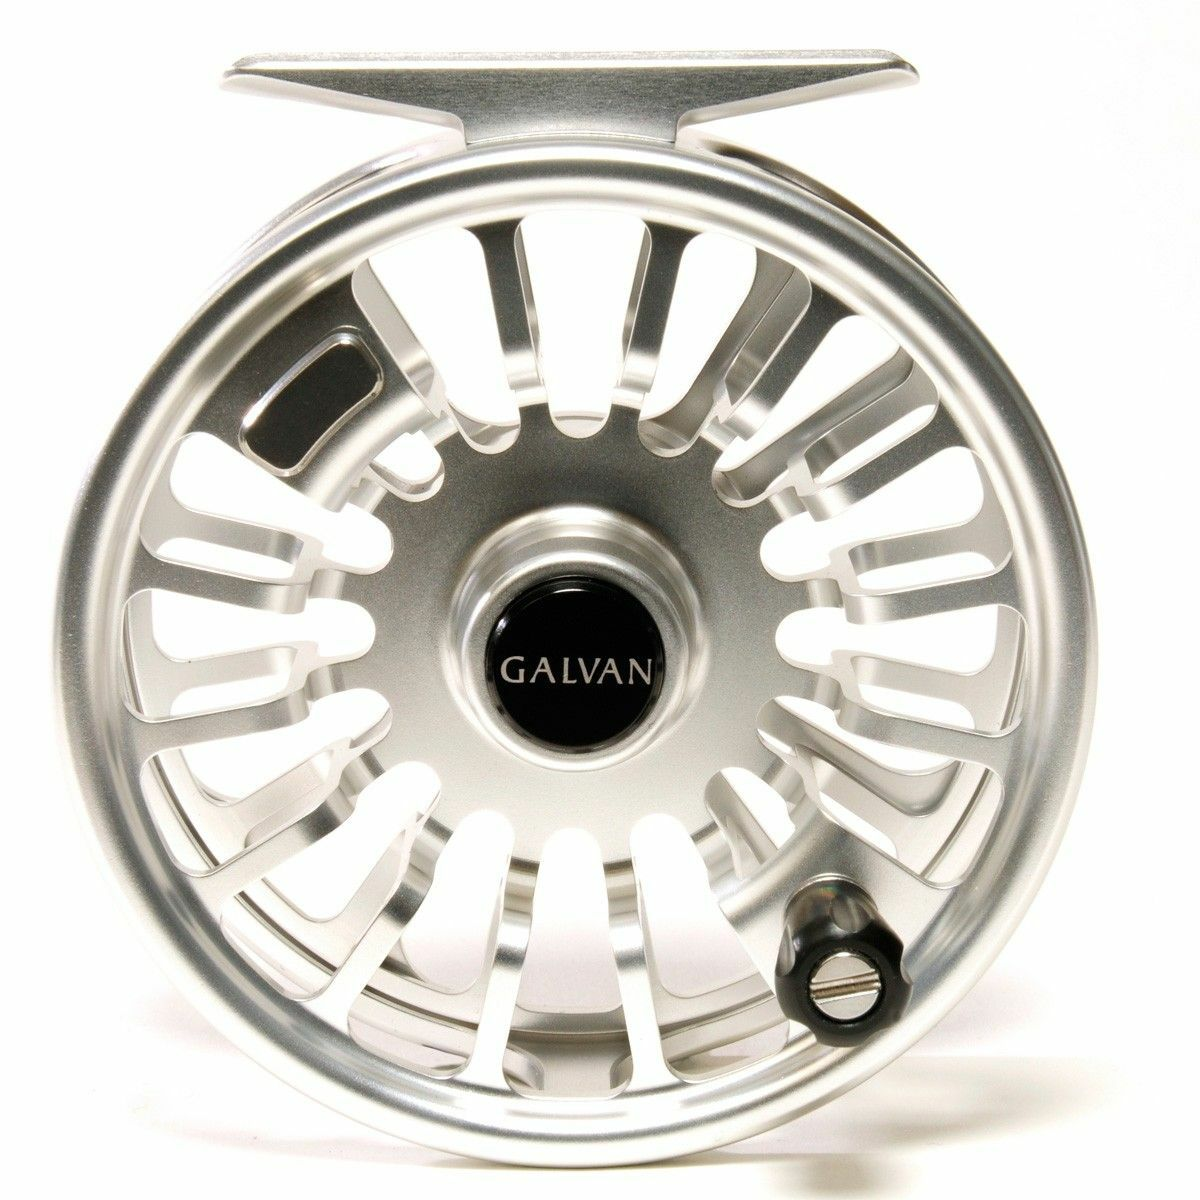 GALVAN T-5 TORQUE 5 FLY REEL CLEAR SILVER FOR 5/6 WT ROD USA MADE FREE $80 LINE